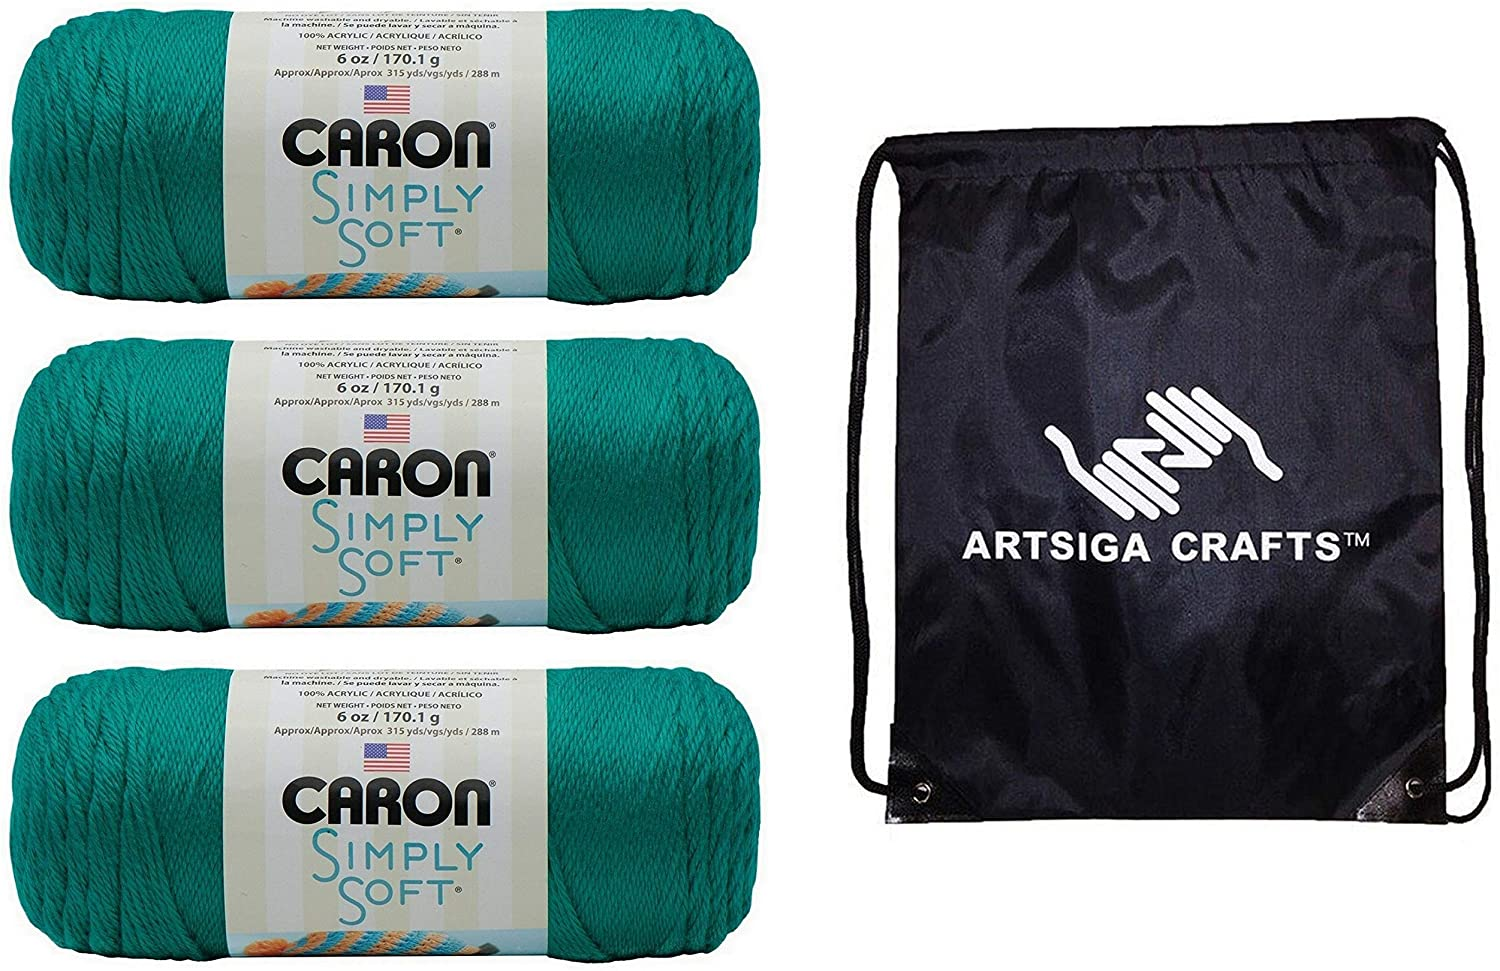 Caron Knitting Yarn Simply Soft Solids Cool Green 3-Skein Factory Pack (Same Dyelot) H97003-9770 Bundle with 1 Artsiga Crafts Project Bag